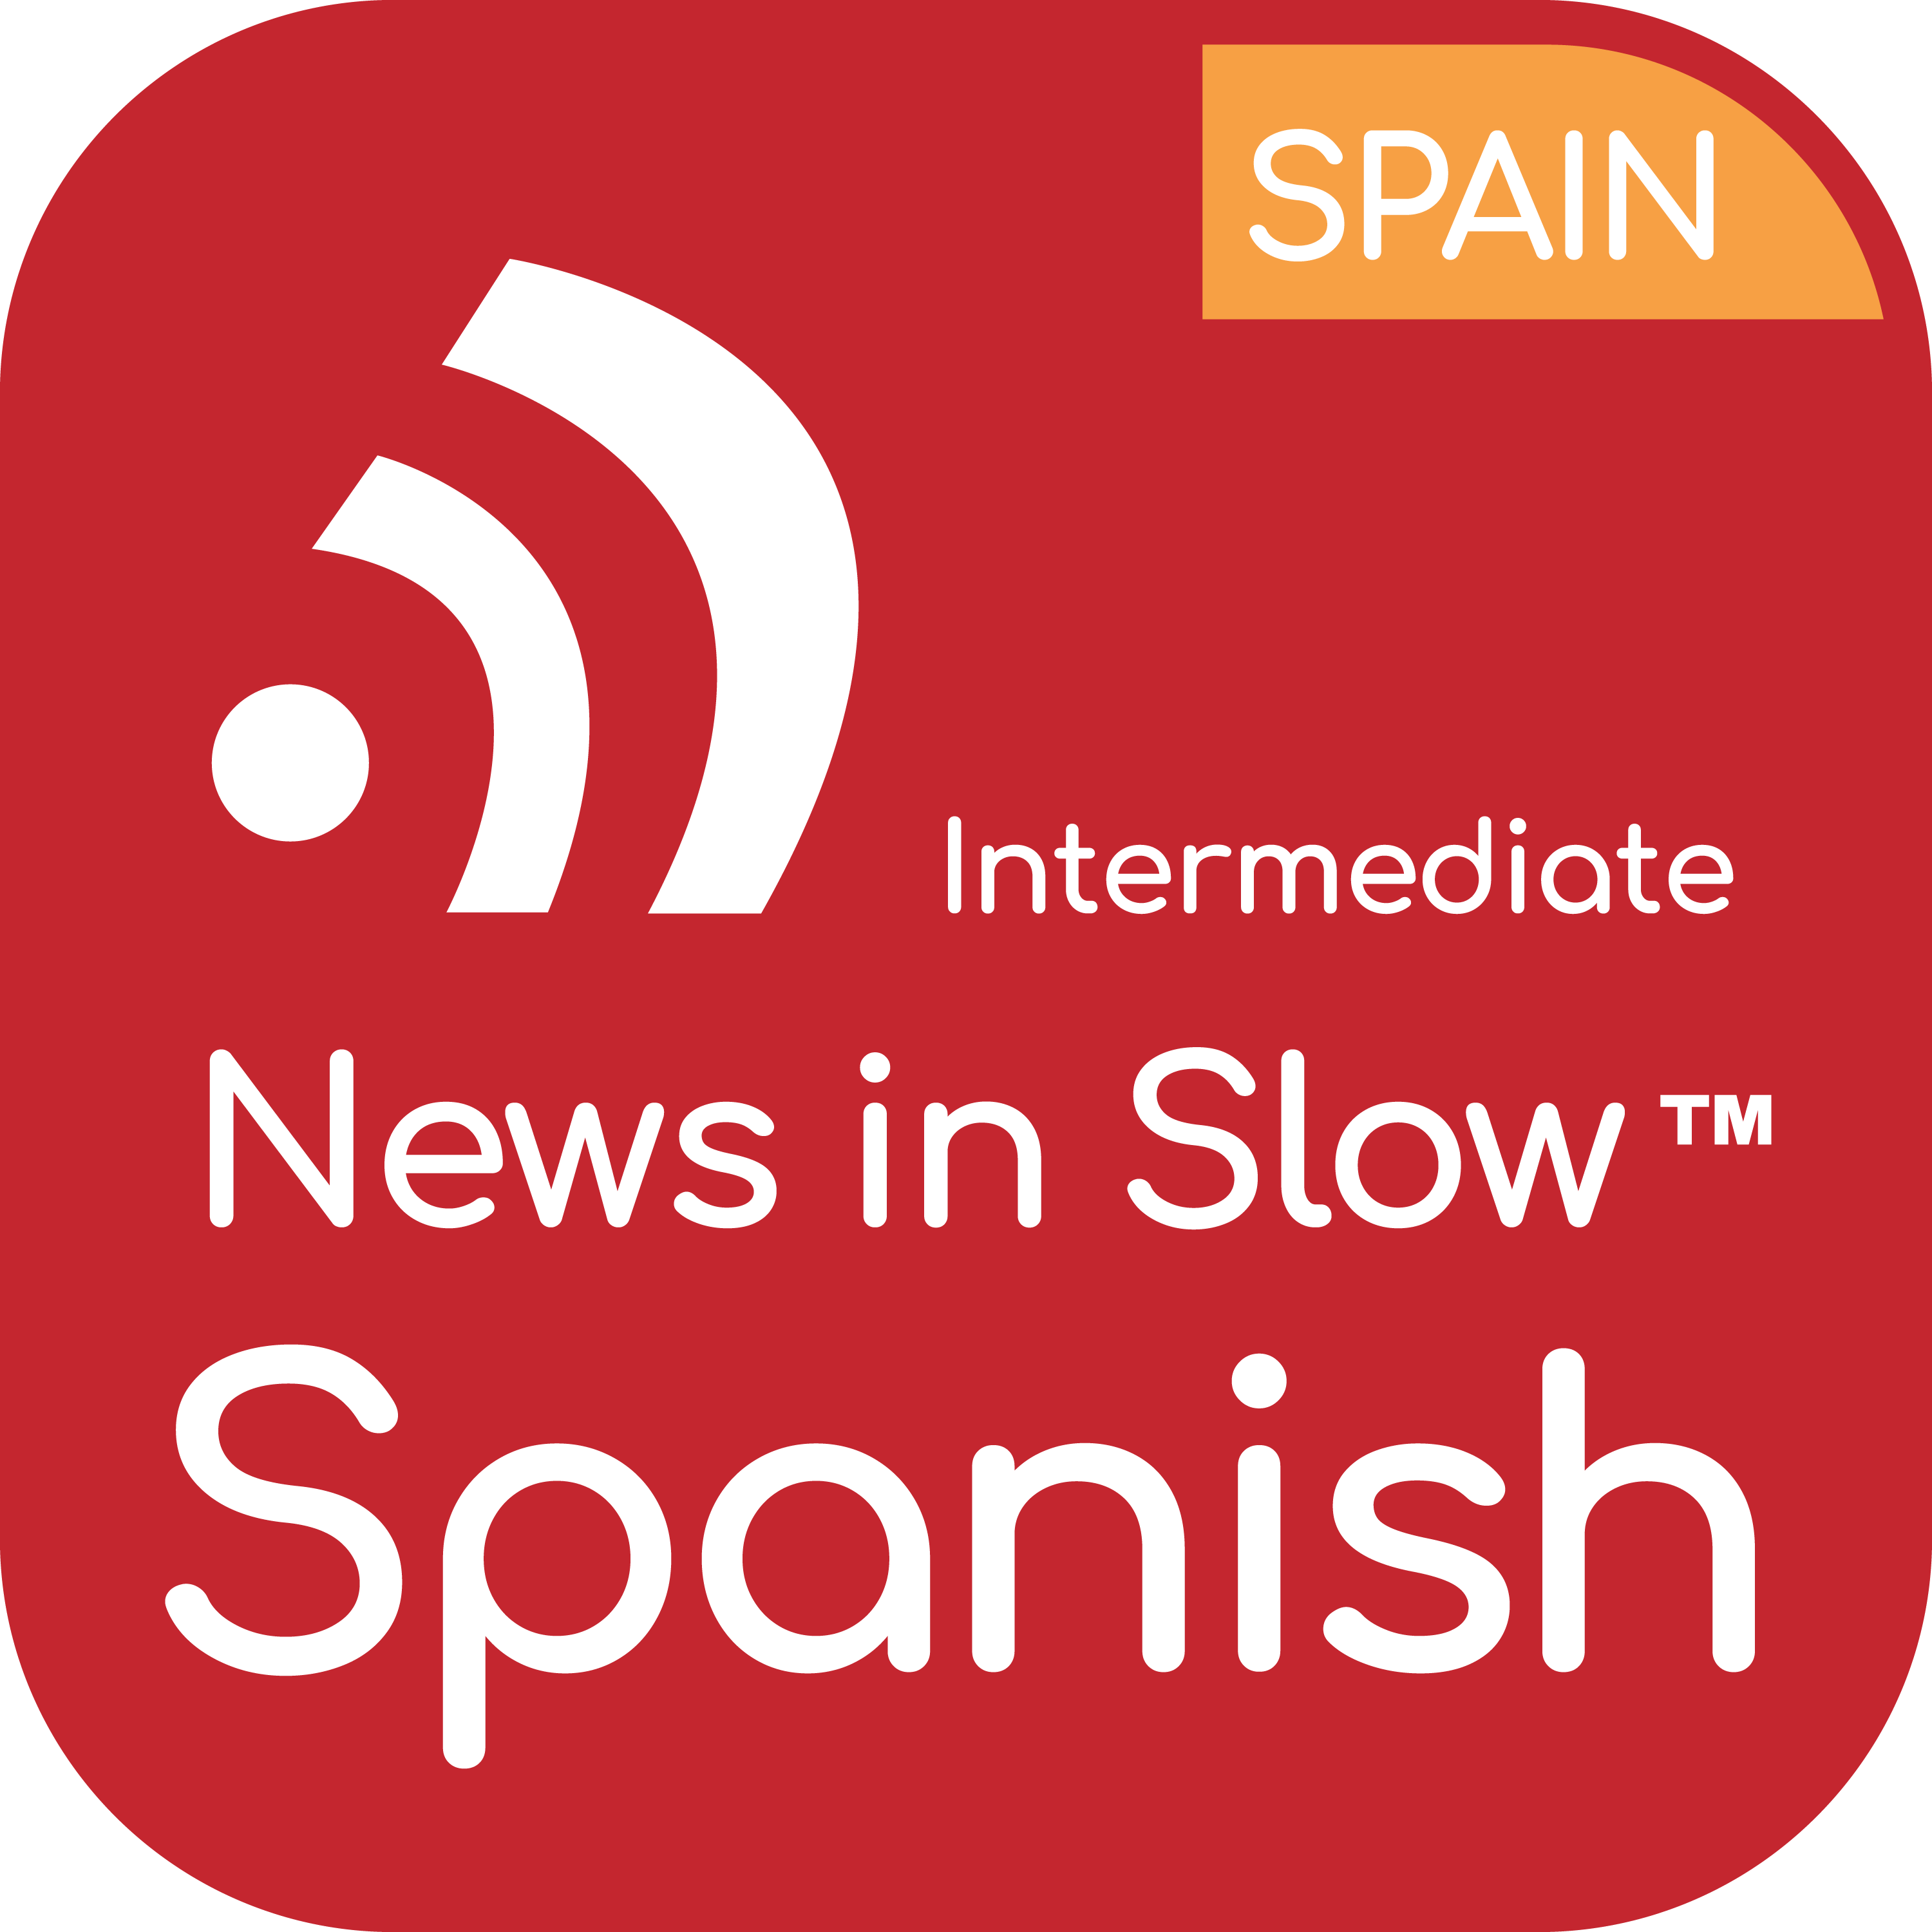 News in Slow Spanish - #615 - Learn Spanish through Current Events